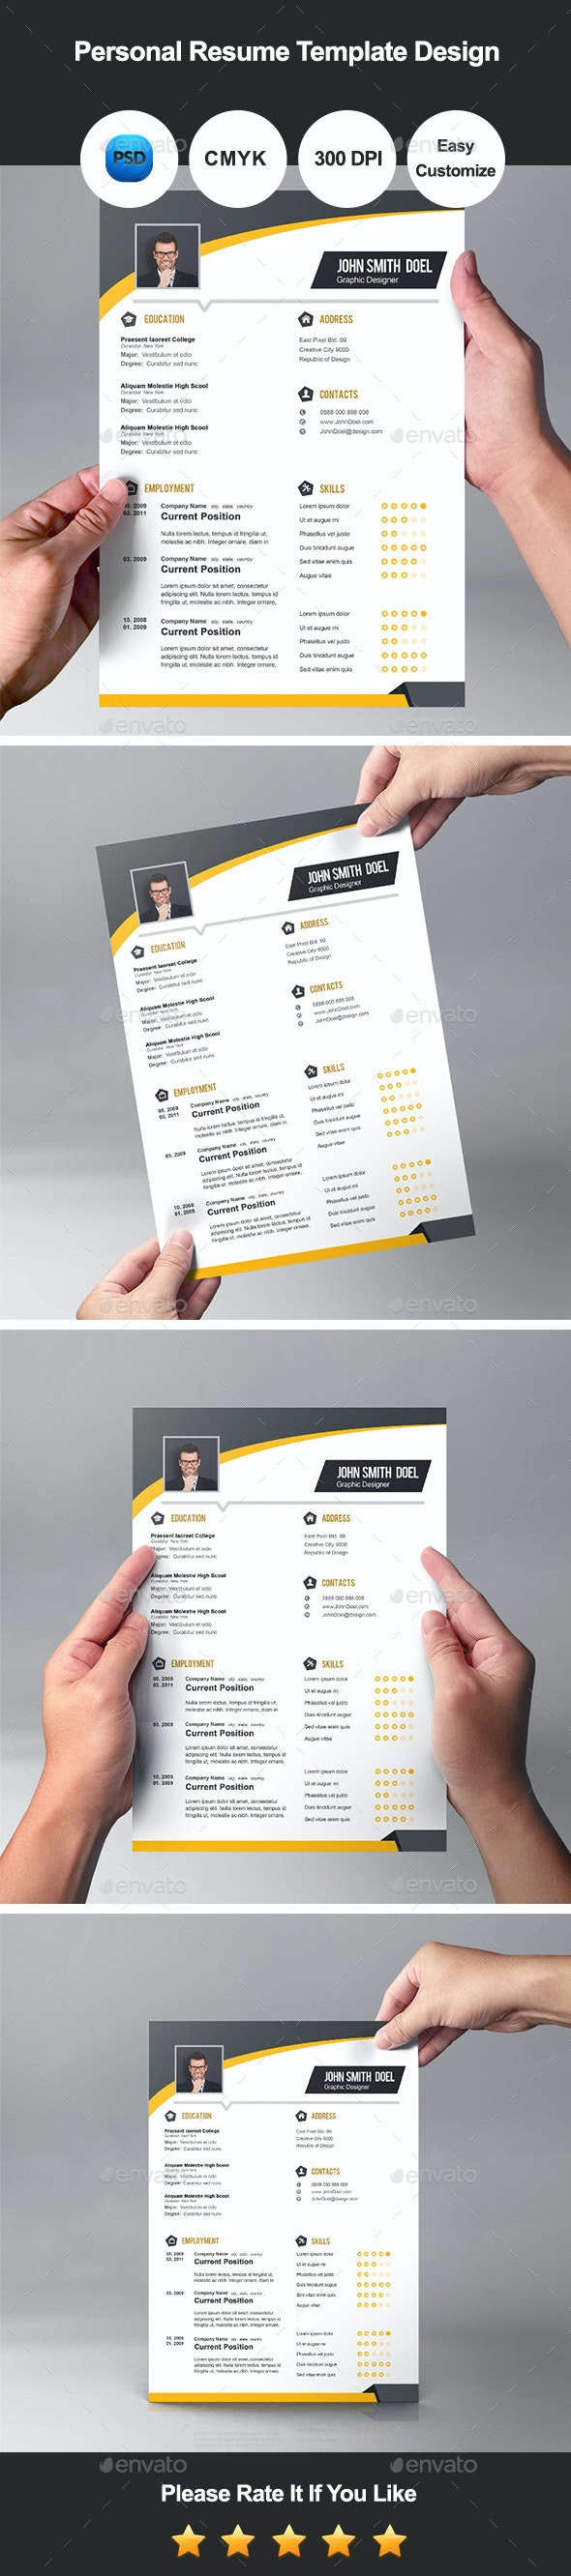 Personal Resume Template Design - Resumes Stationery